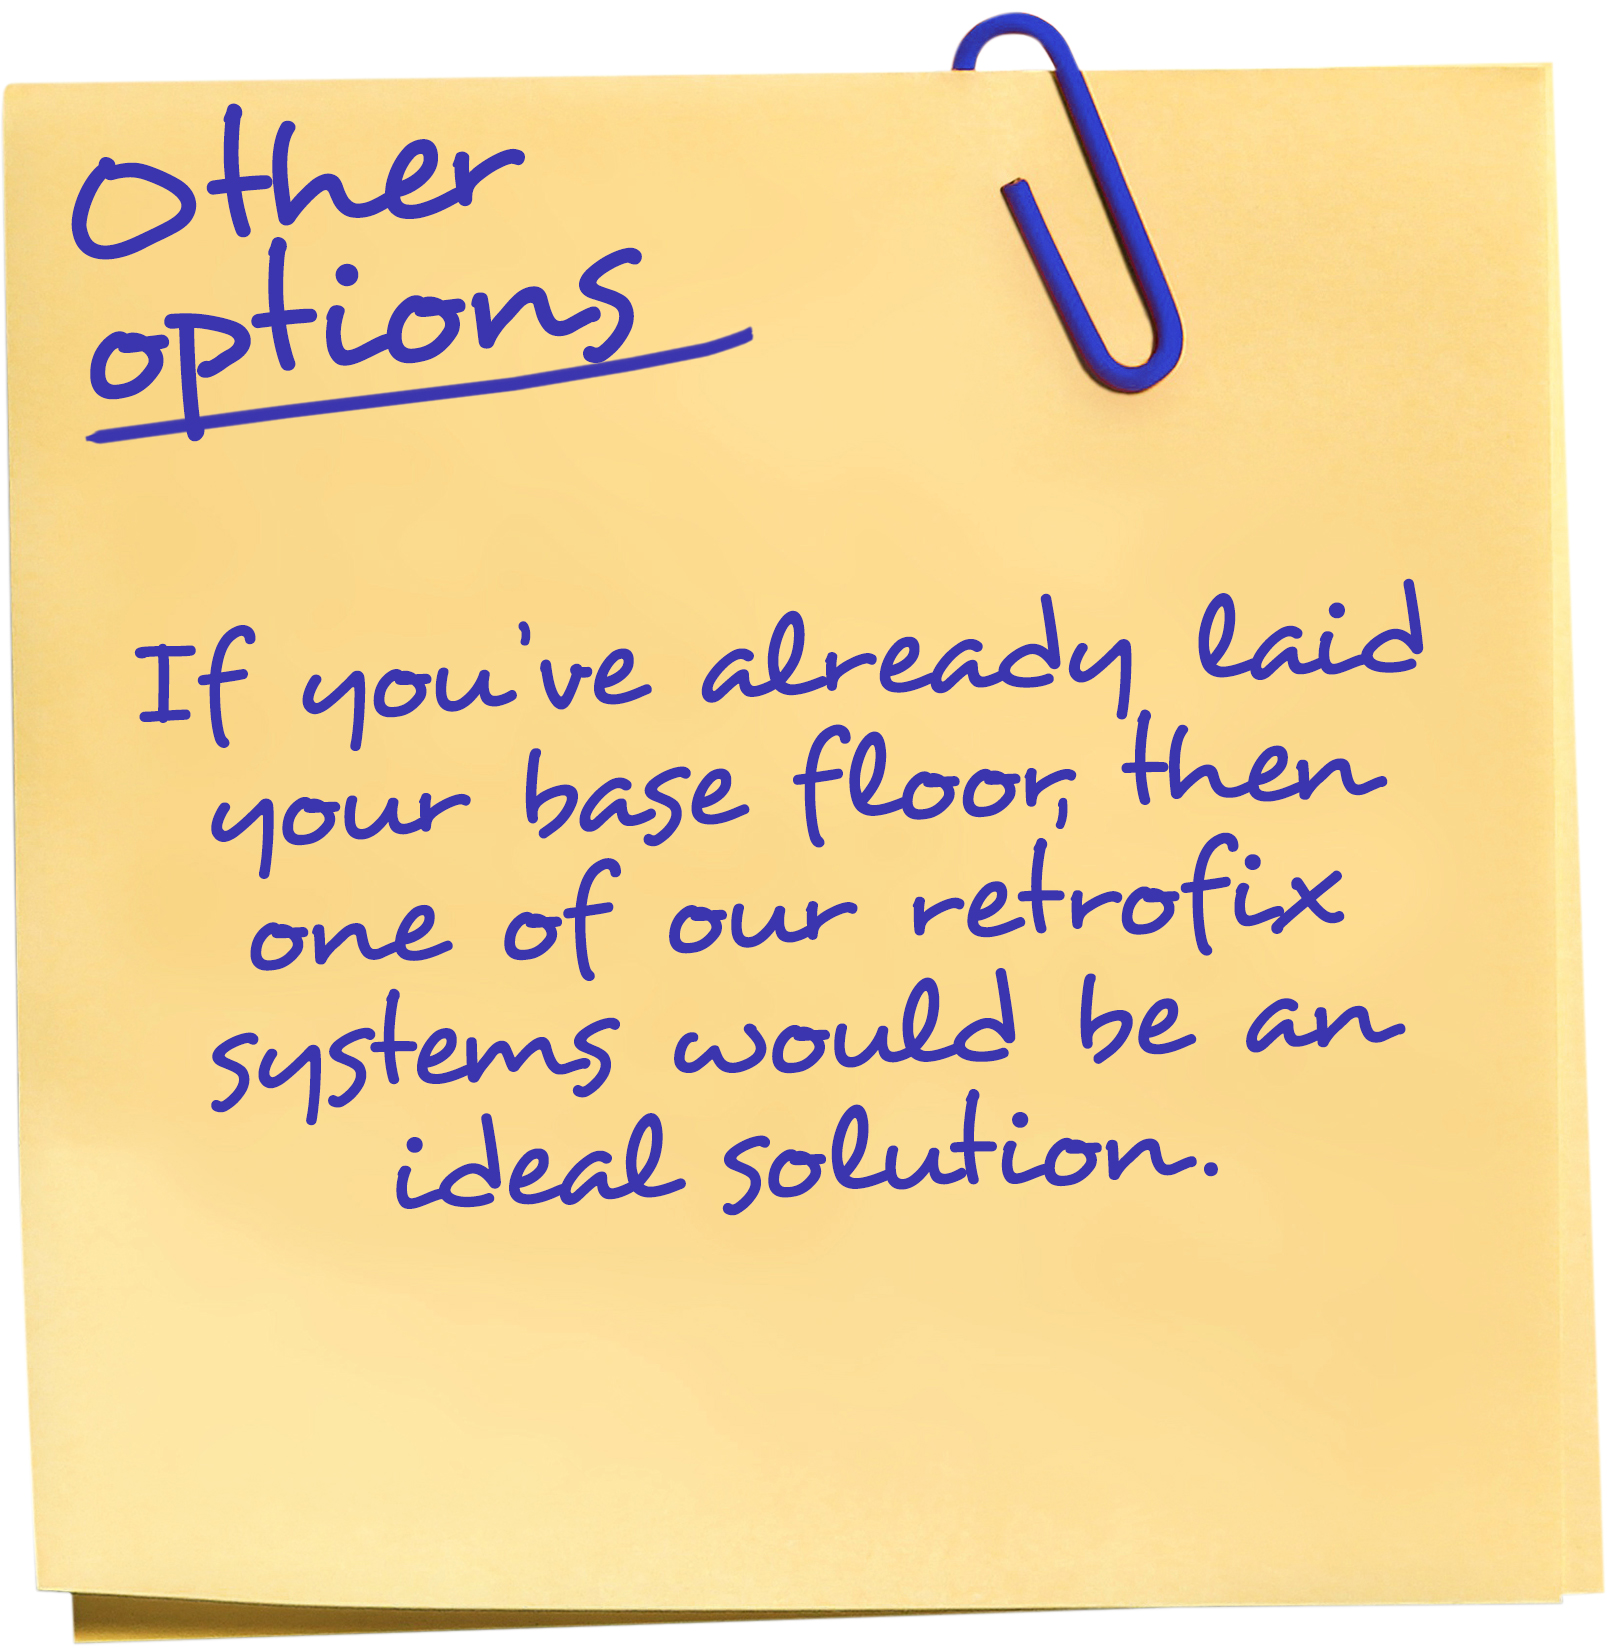 If you've already laid your base floor, then one of our retrofix systems would be an ideal solution.